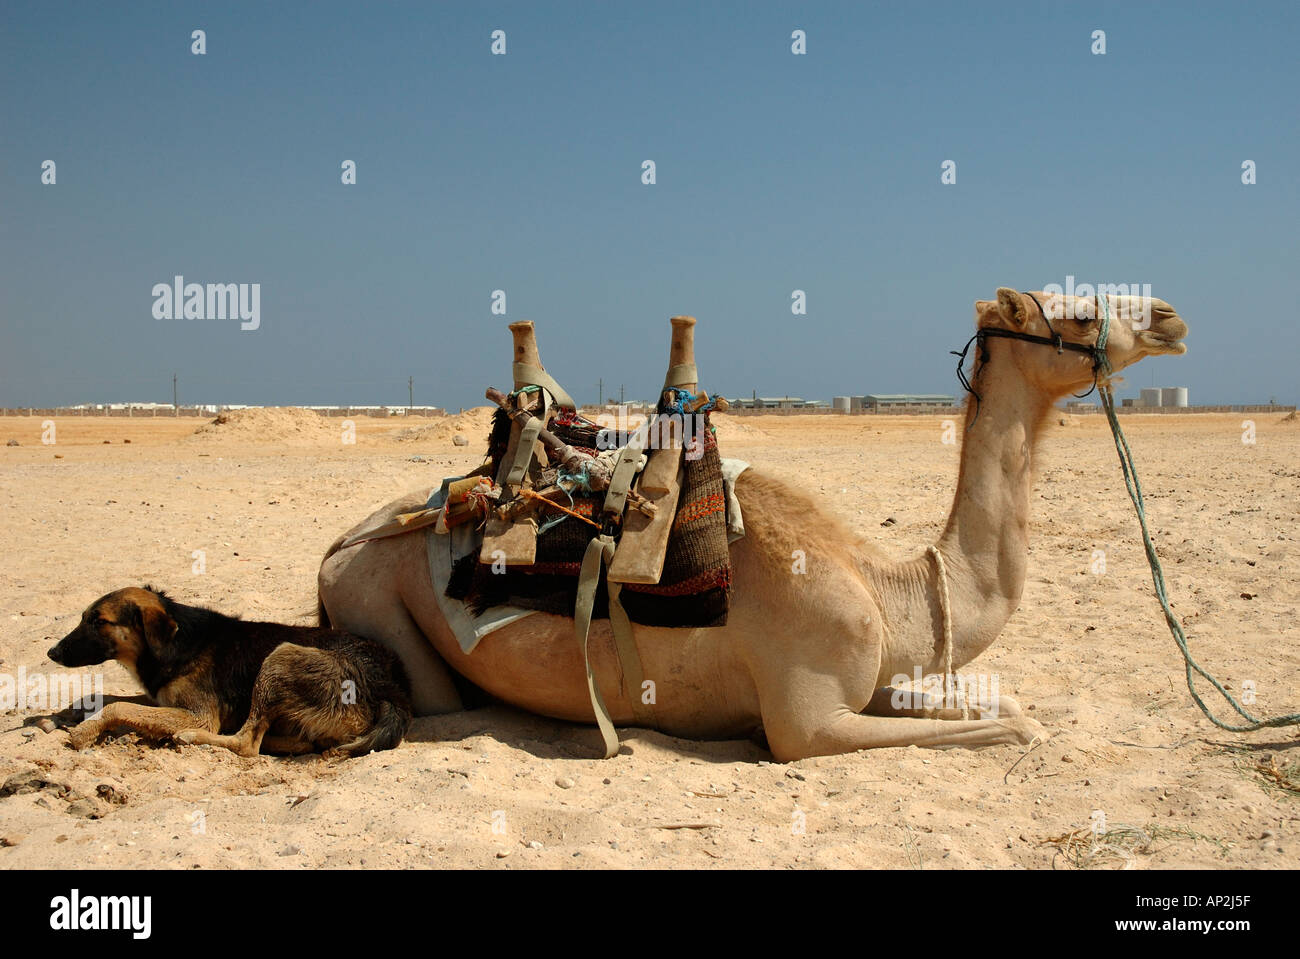 A camel and dog lie together in companionship on the beach at Nuweiba in Egypt - Stock Image